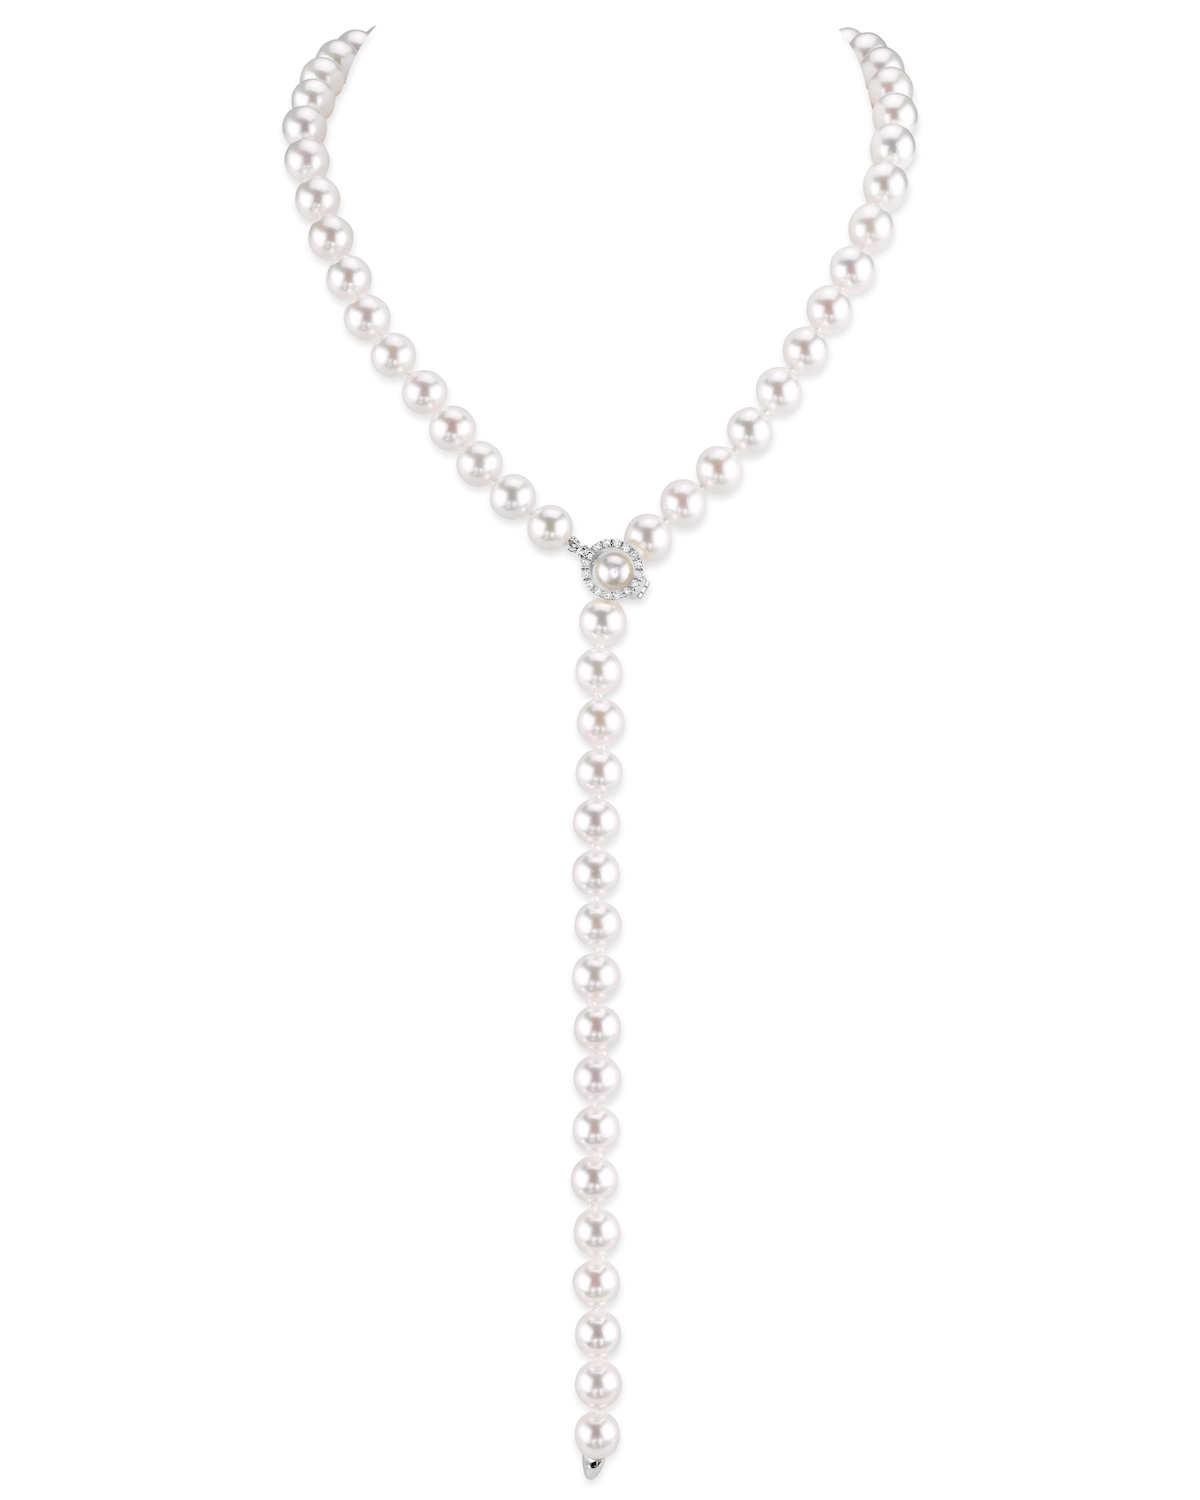 8-9mm White Freshwater Pearl & Diamond Adjustable Y-Shape Necklace- AAAA Quality